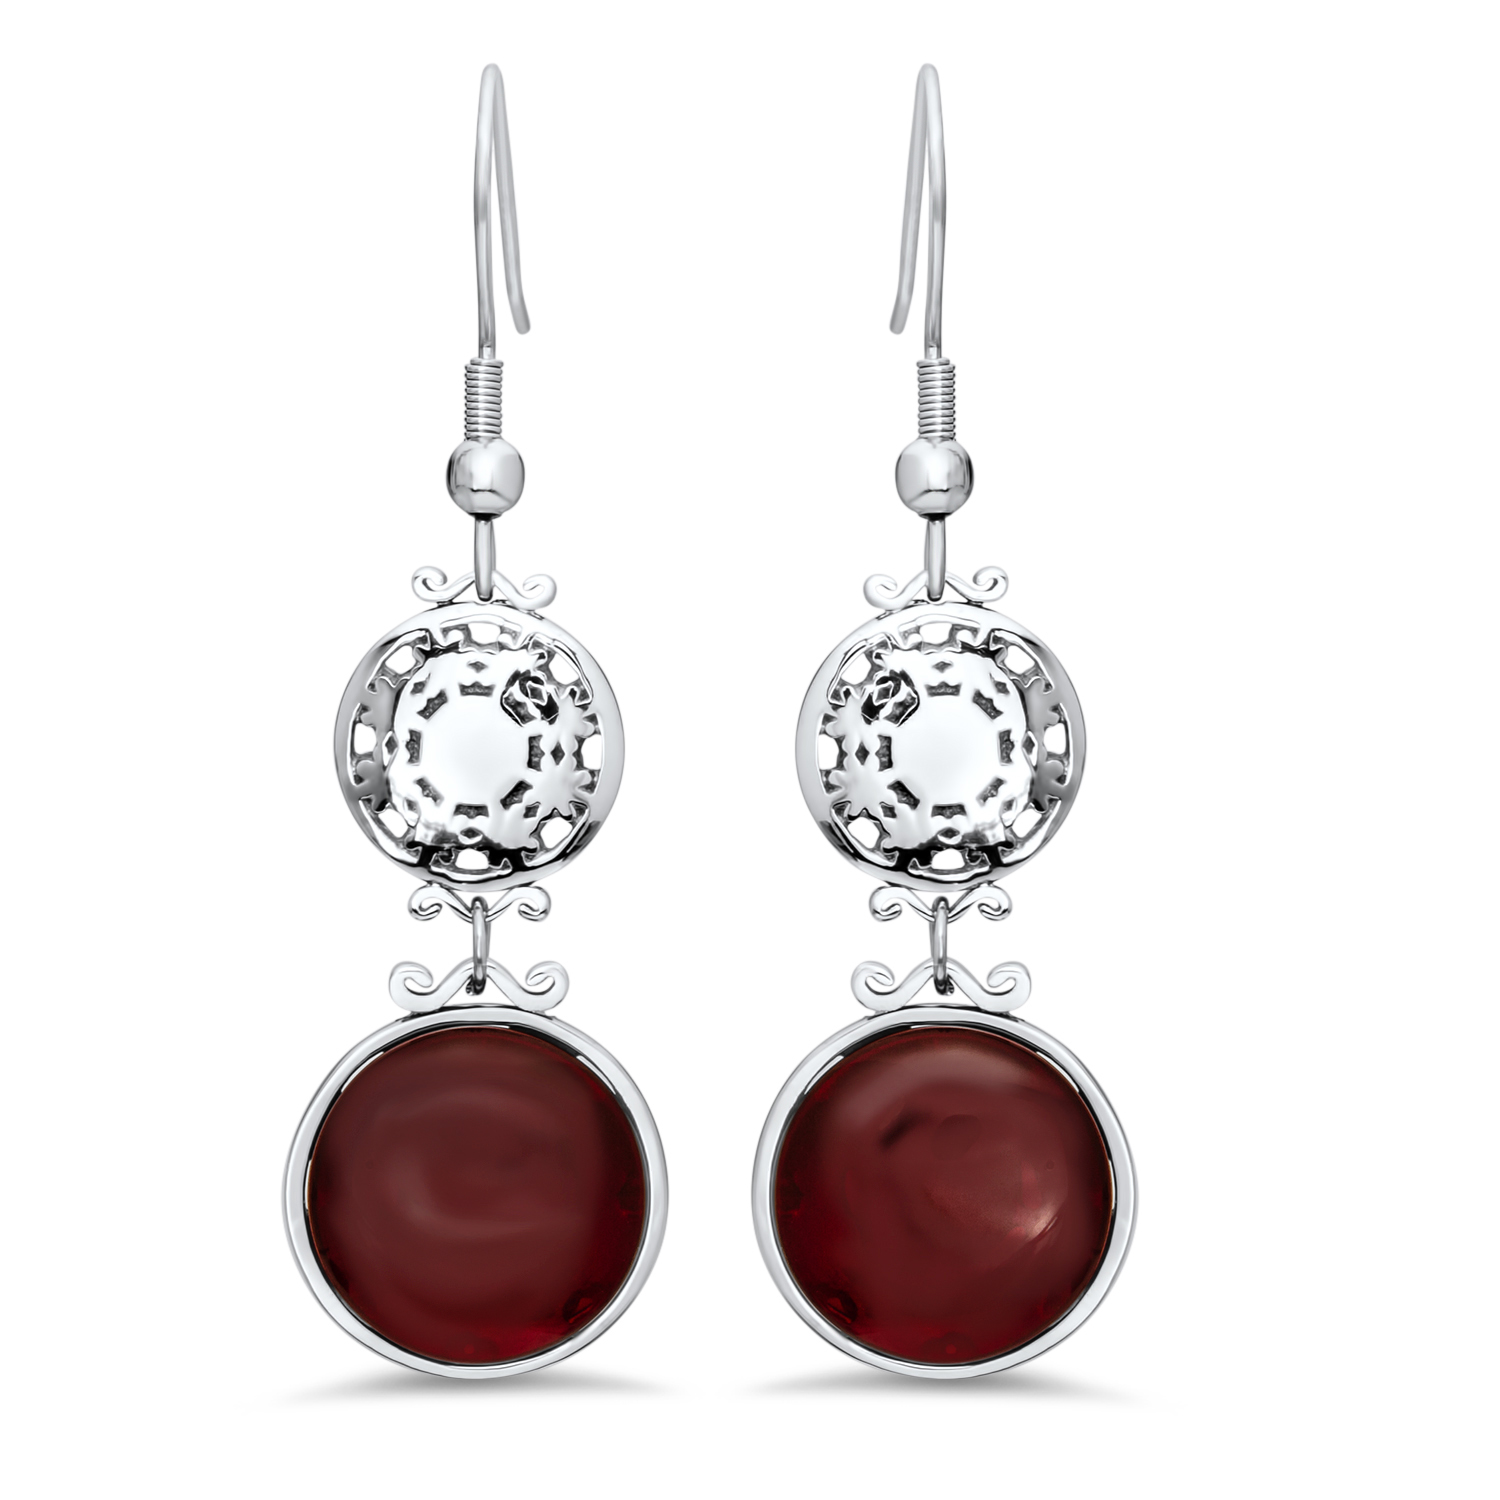 Stainless Steel Red Glass Polished Earrings